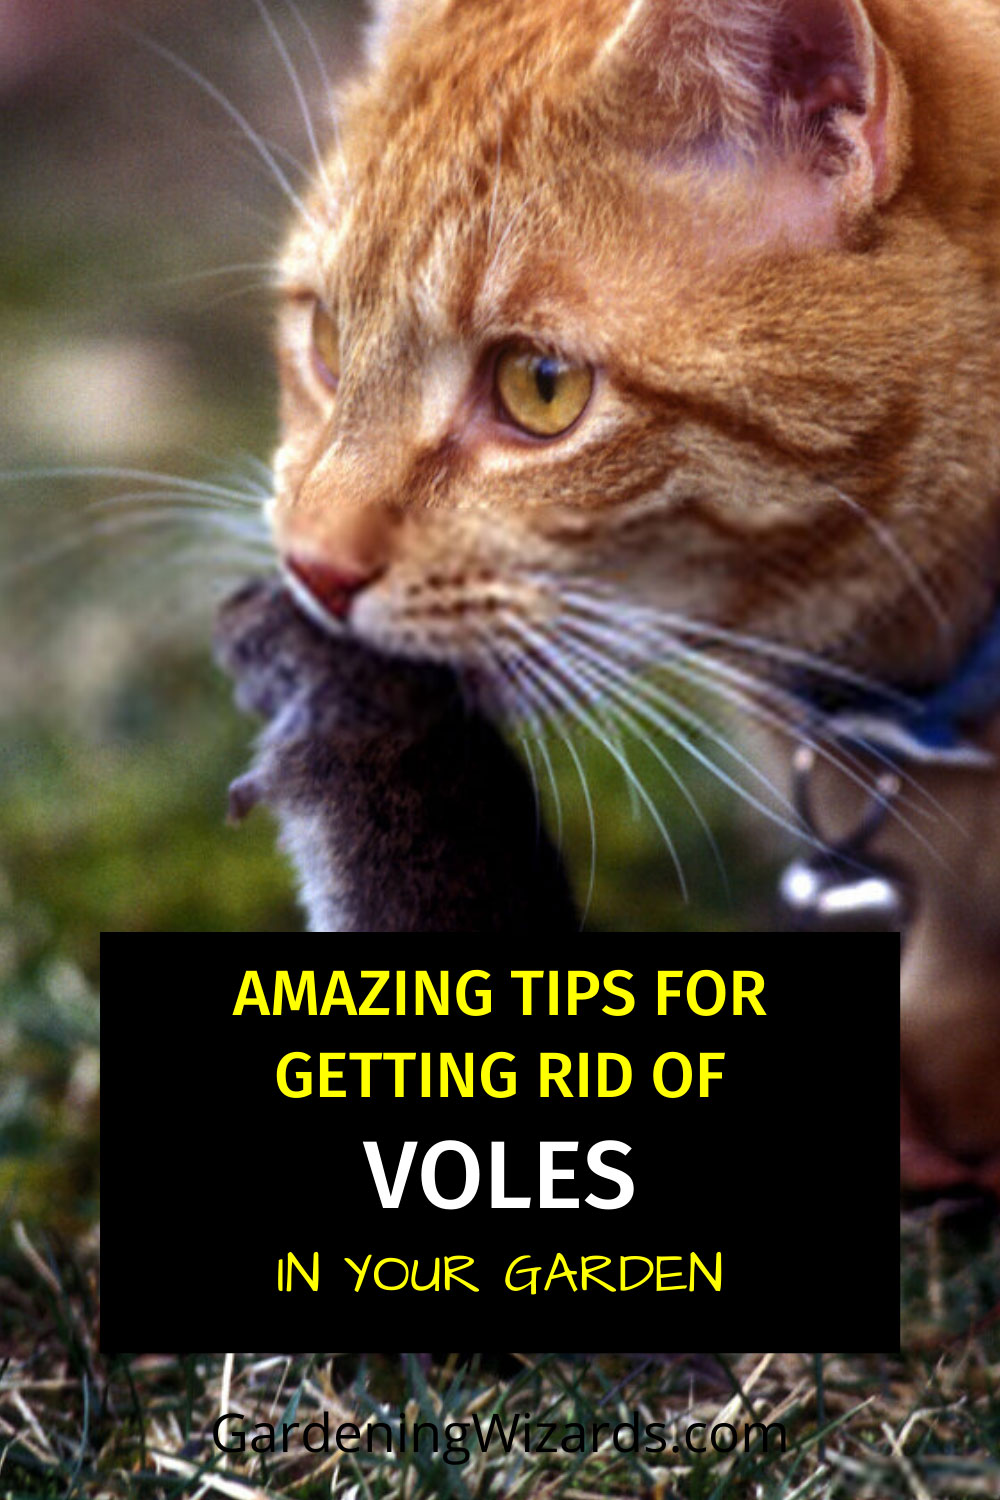 How To Get Rid Of Voles